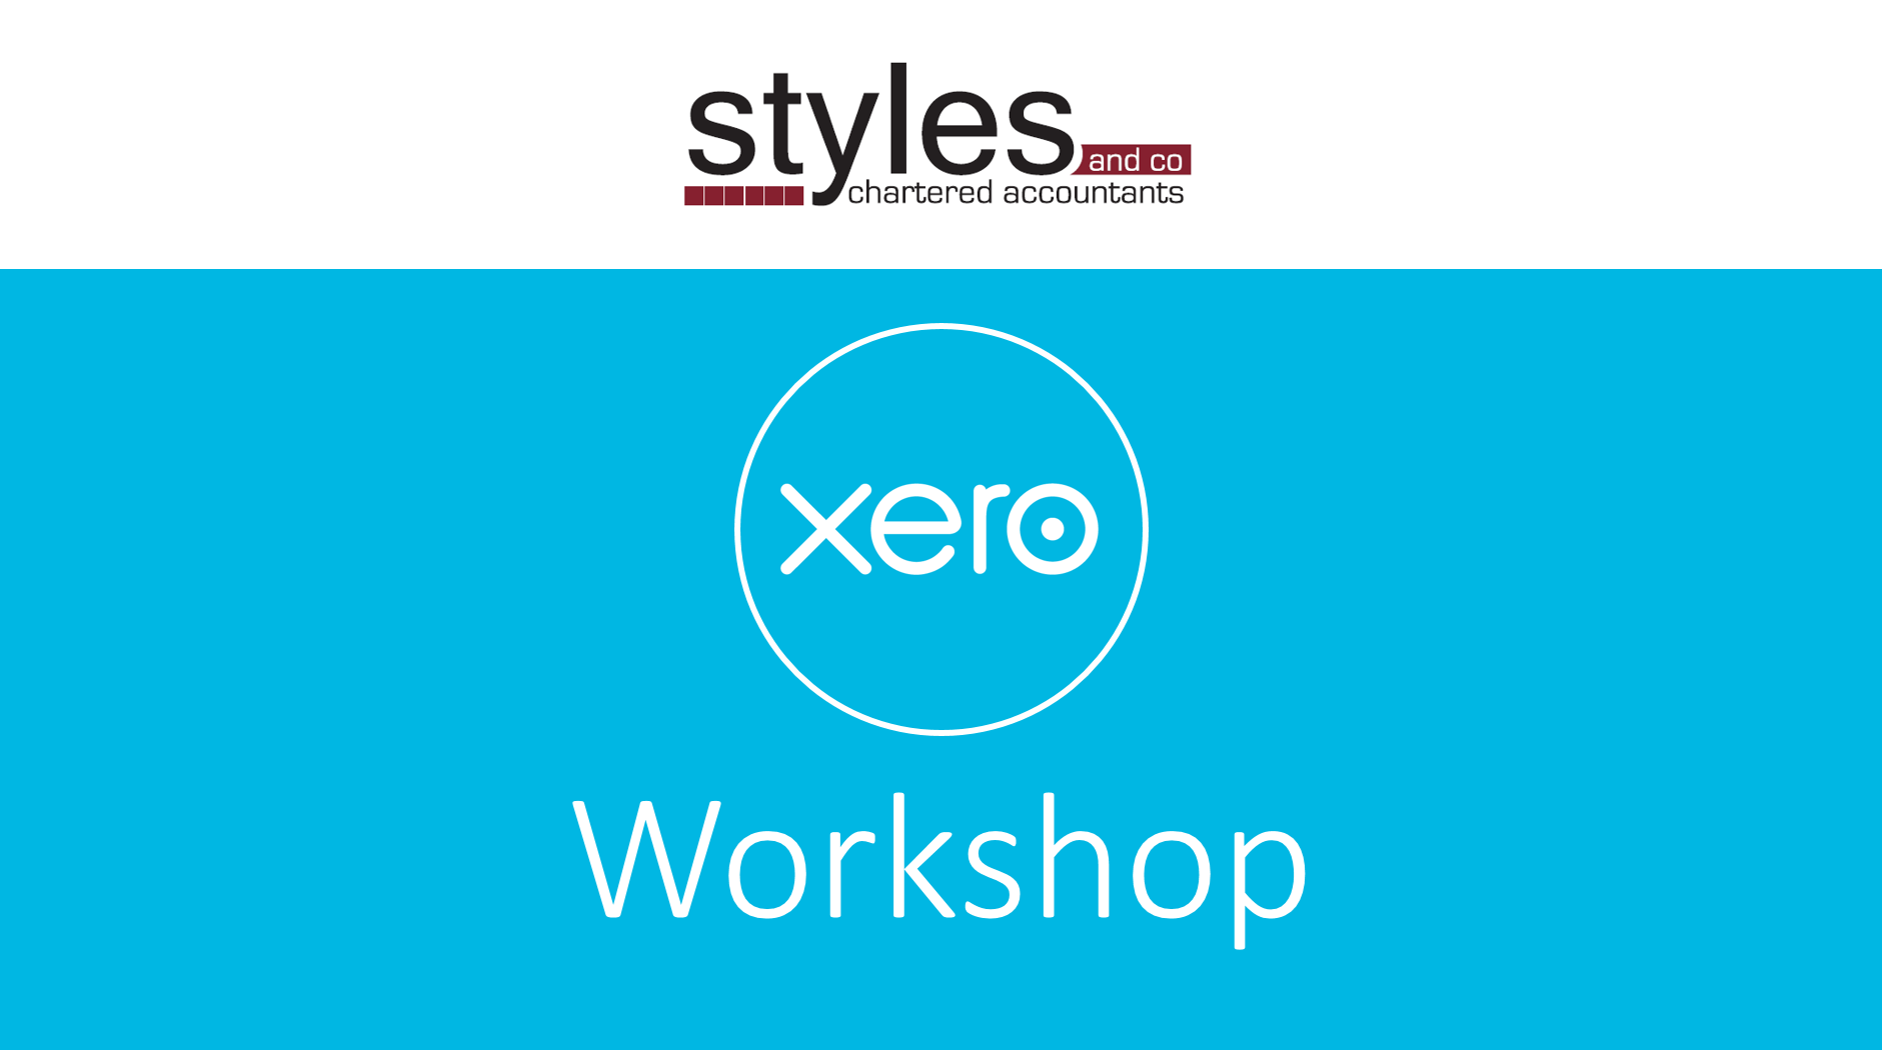 Styles and Co Xero Workshop